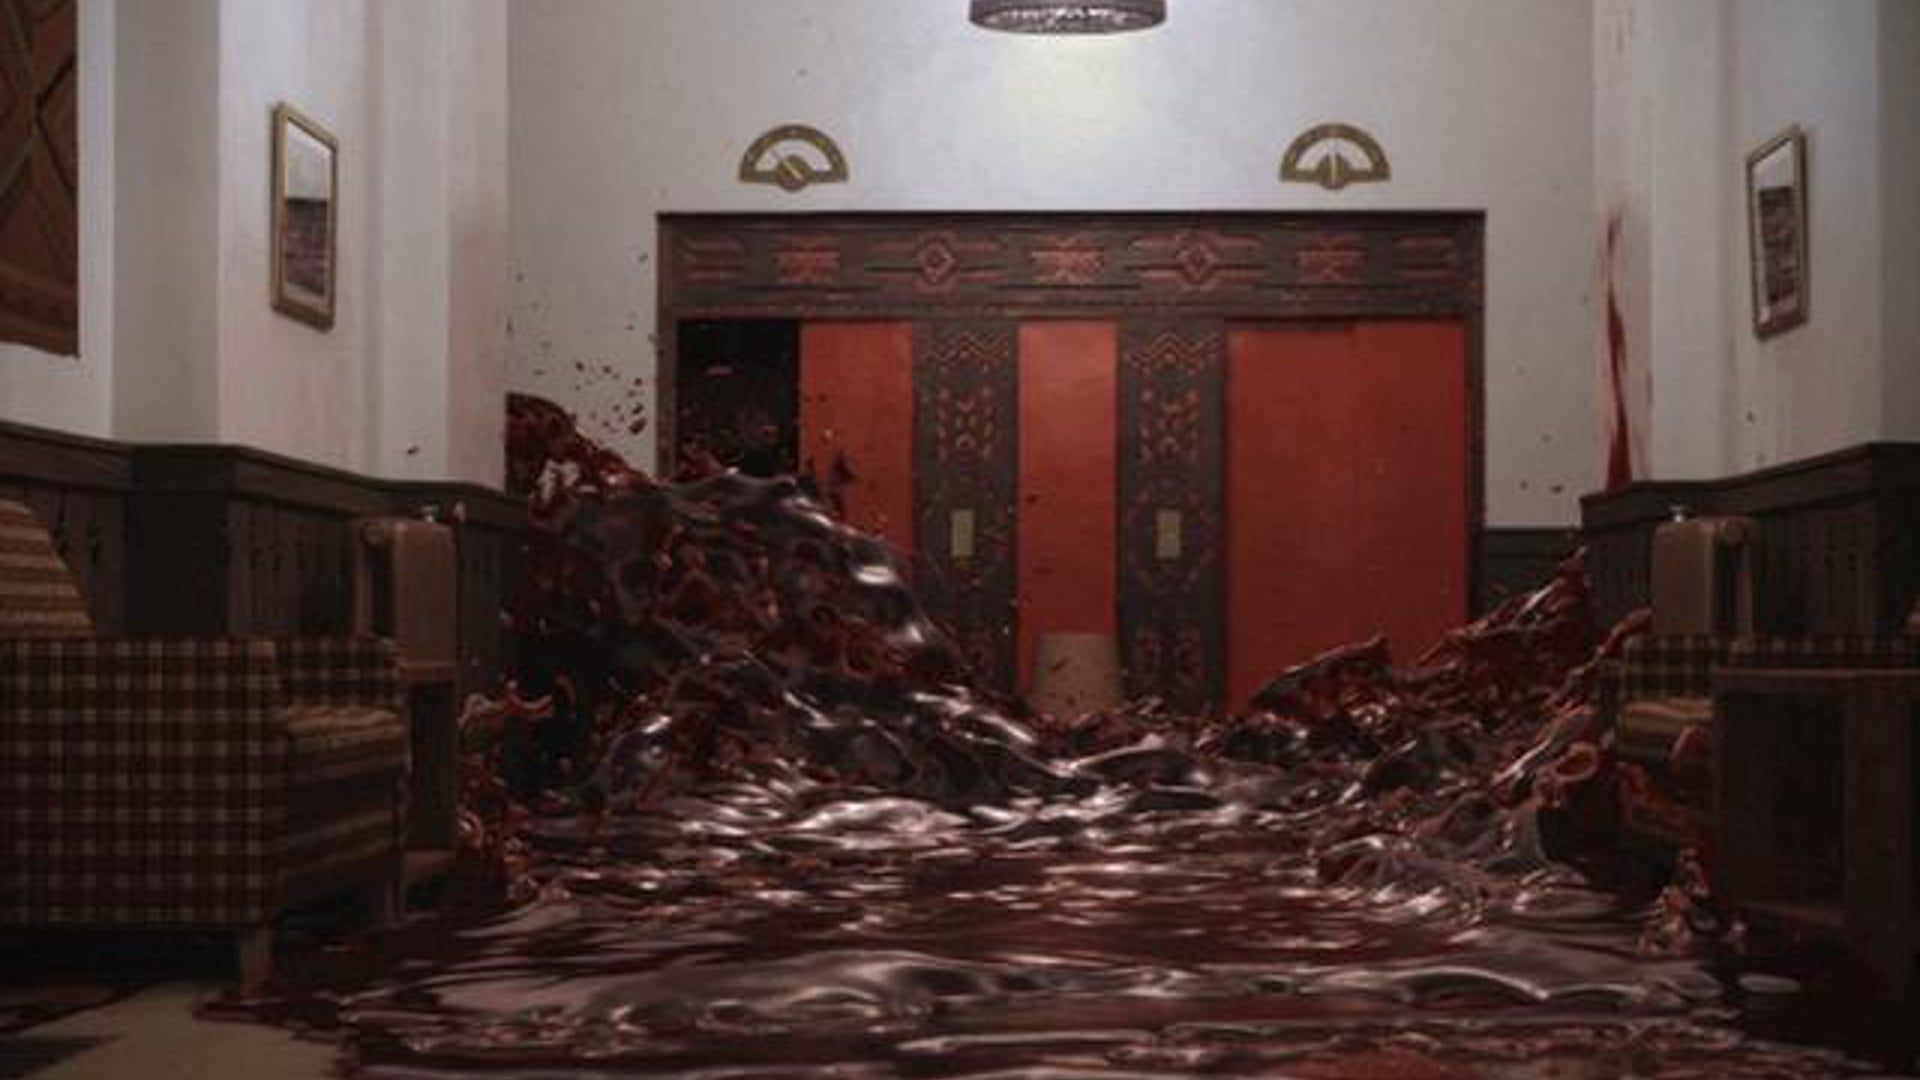 The Shining 'Blood Elevator' recreated with RealFlow & Lightwave